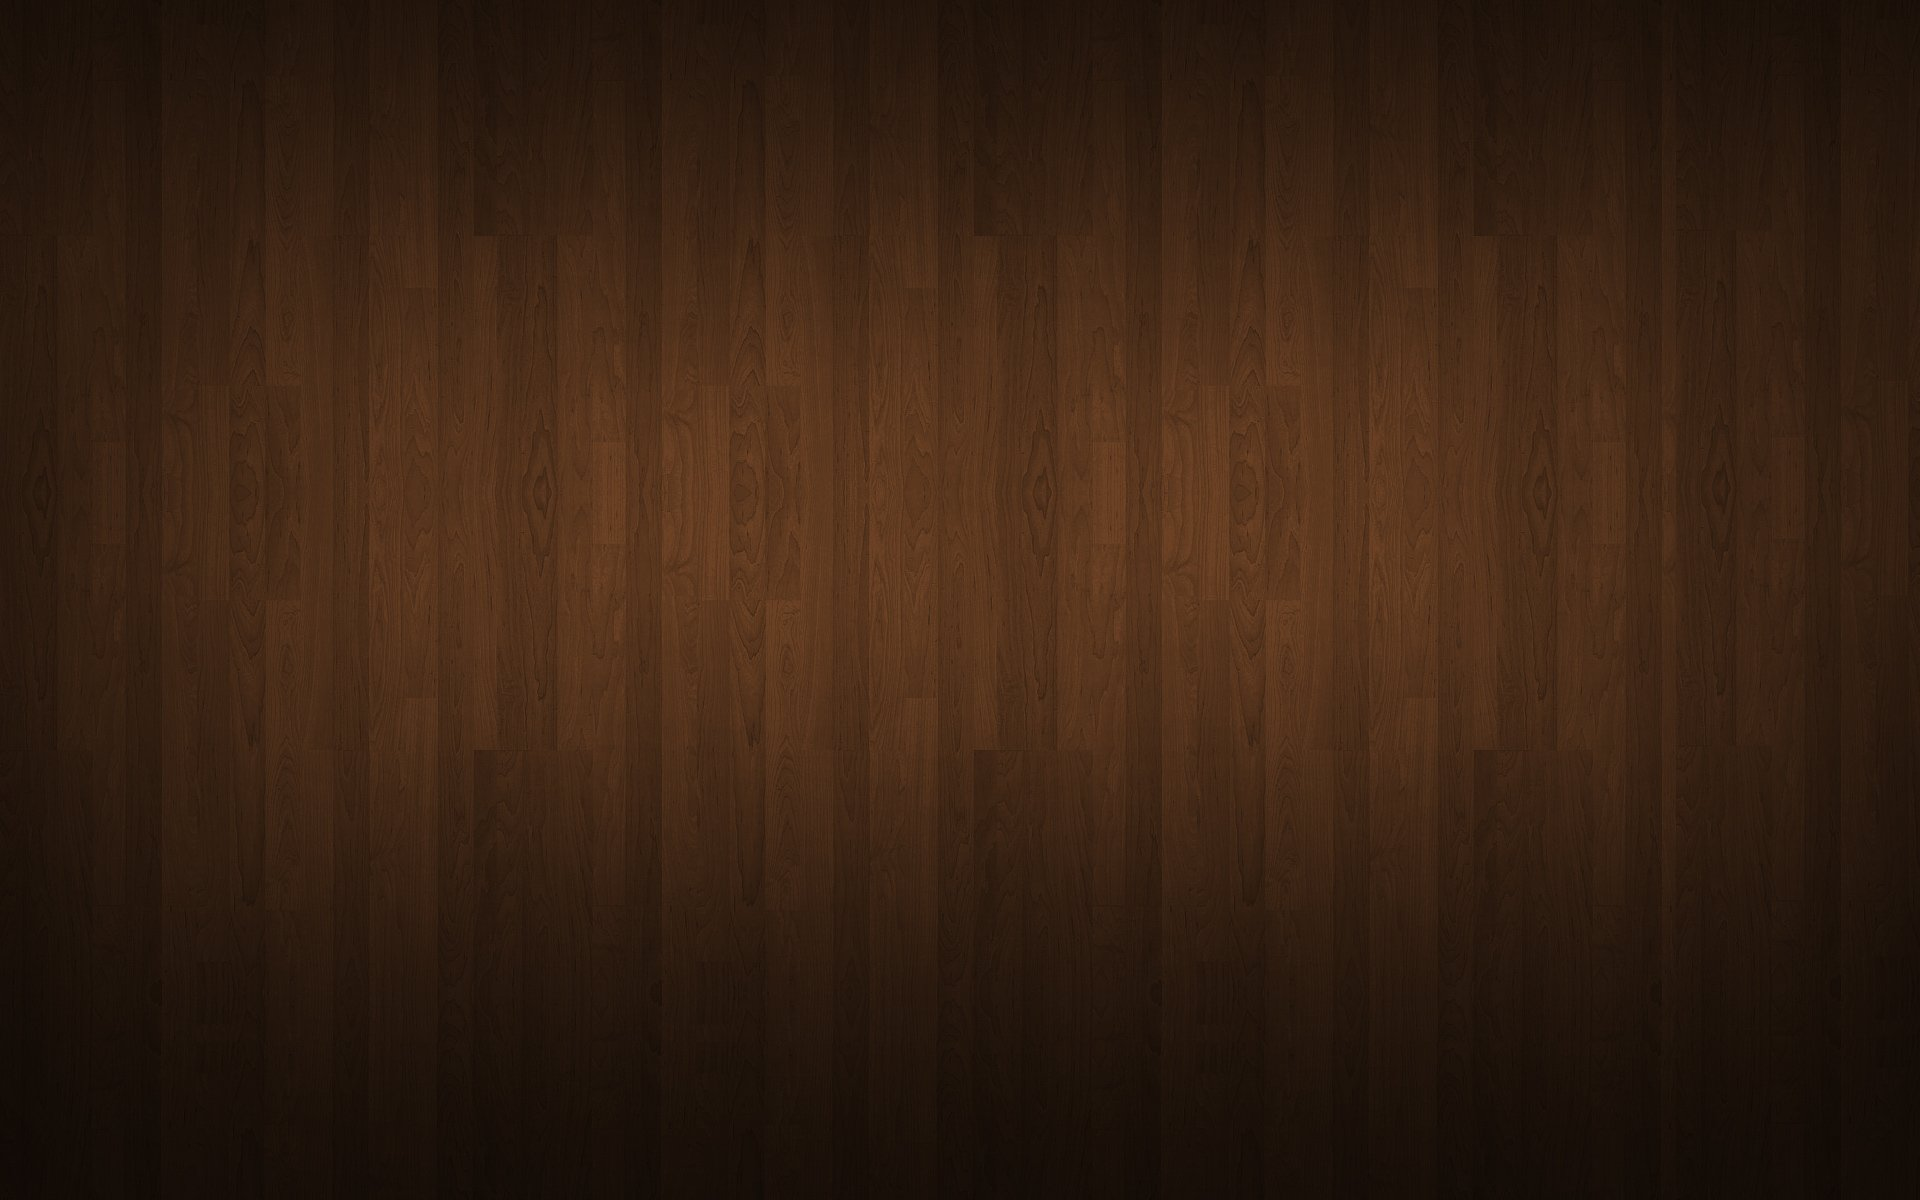 Background Kayu Warna Coklat 196 Wood Hd Wallpapers Background Images Wallpaper Abyss